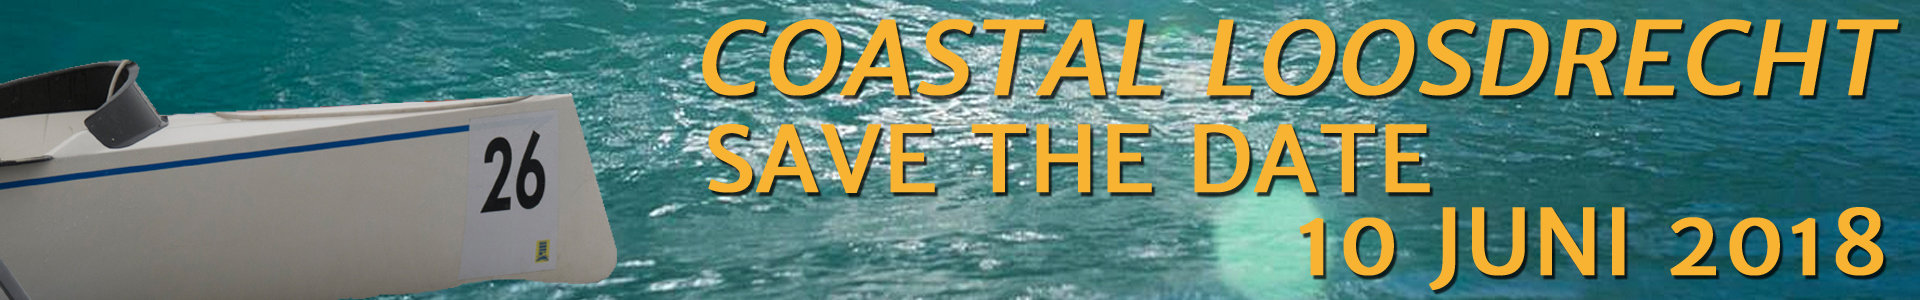 save-the-date-coastal-loosdrecht-banner